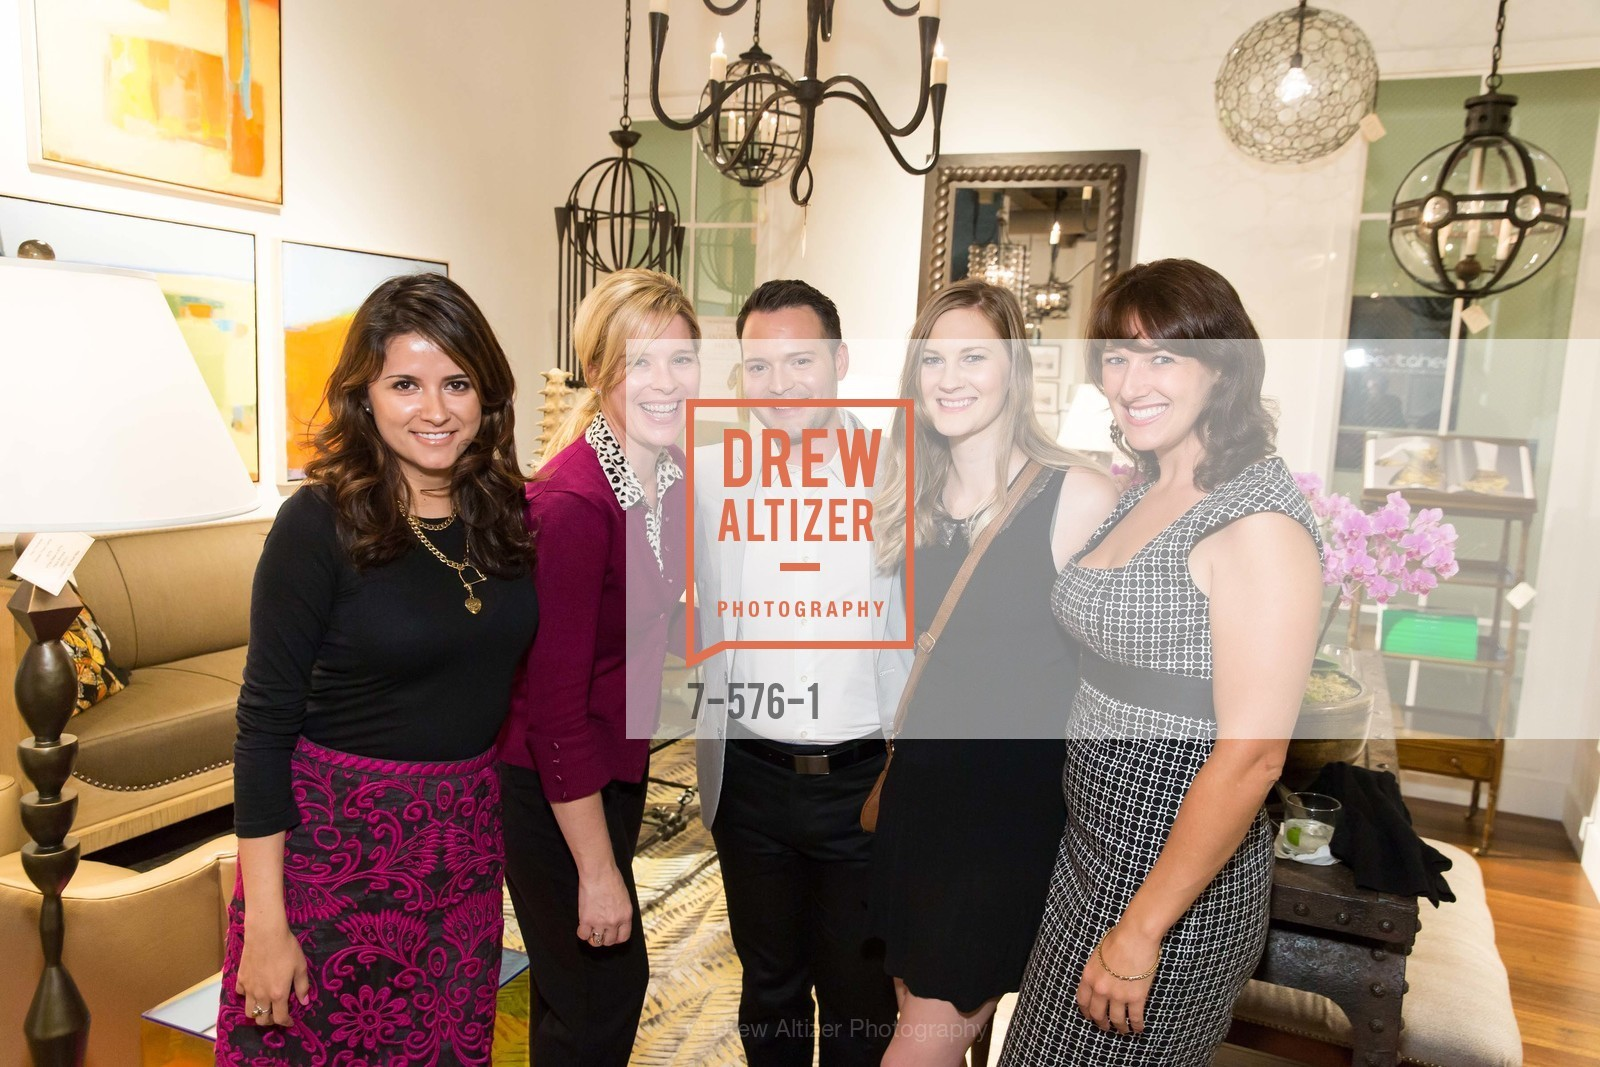 Pamela Lastiri, Barbara Acord, Erin Bujak, Janell Johnson, Sarah Puls, SF FALL ANTIQUES SHOW Designer's Circle Cocktail Party at HEWN, US, September 23rd, 2014,Drew Altizer, Drew Altizer Photography, full-service agency, private events, San Francisco photographer, photographer california